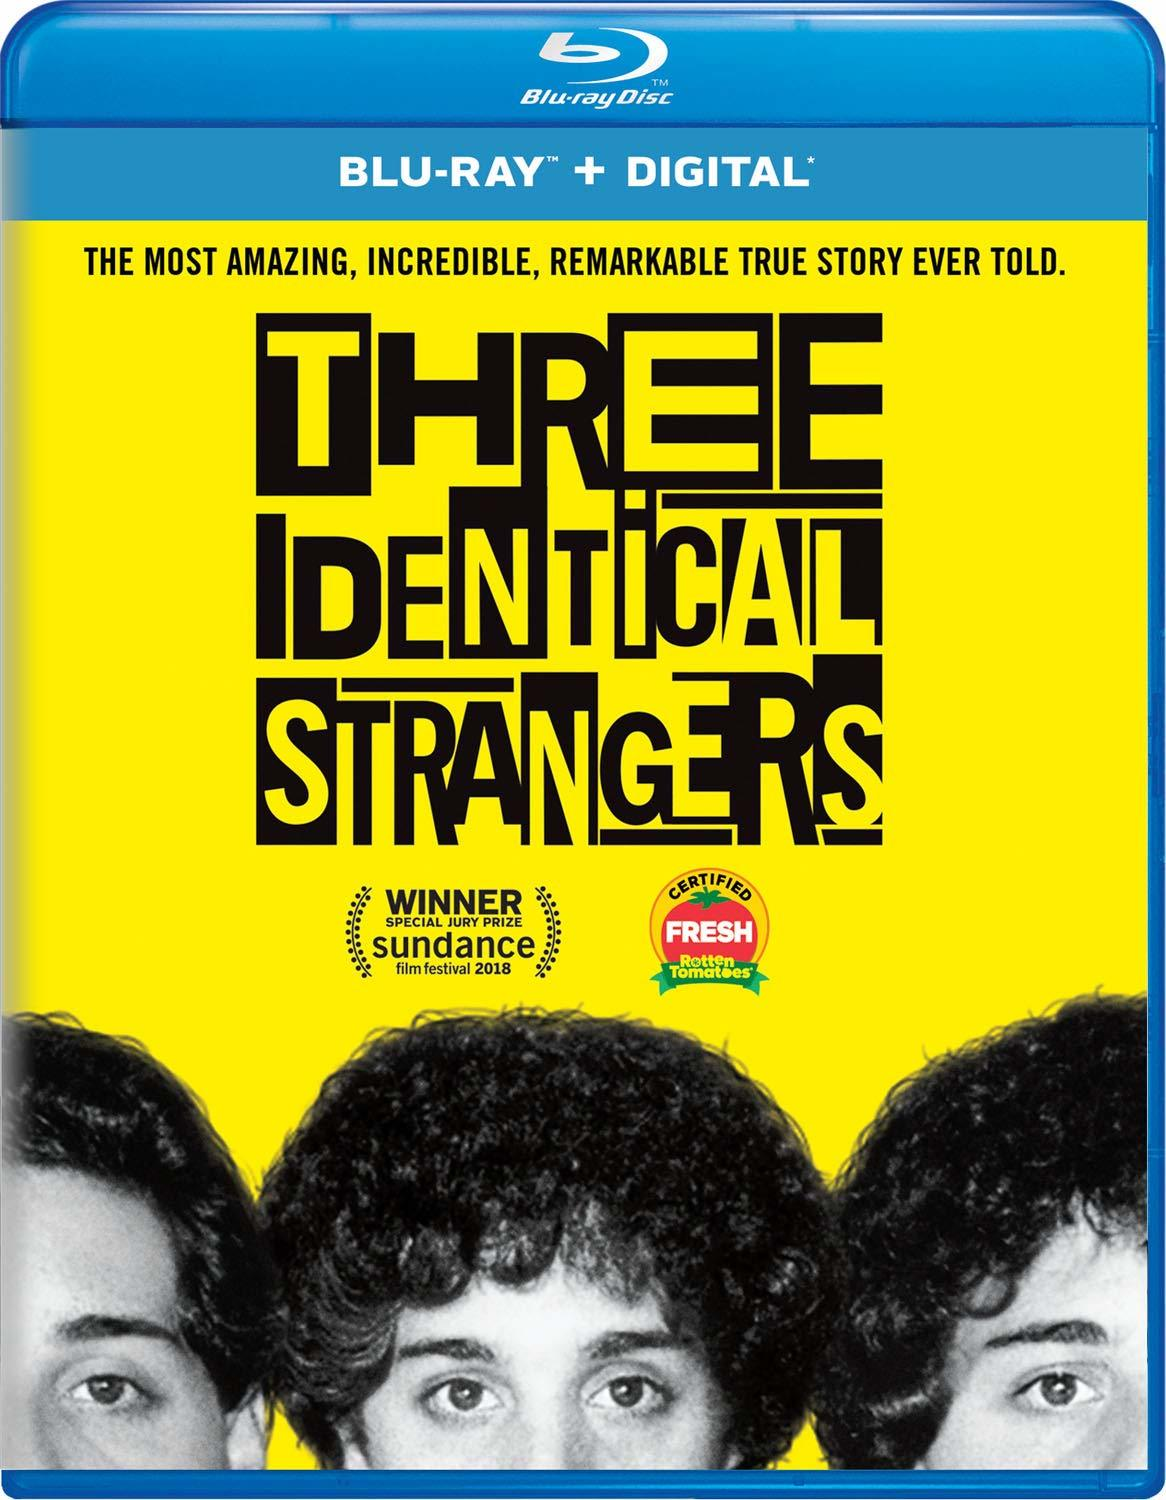 Three Identical Strangers (Blu-ray)(Region A)